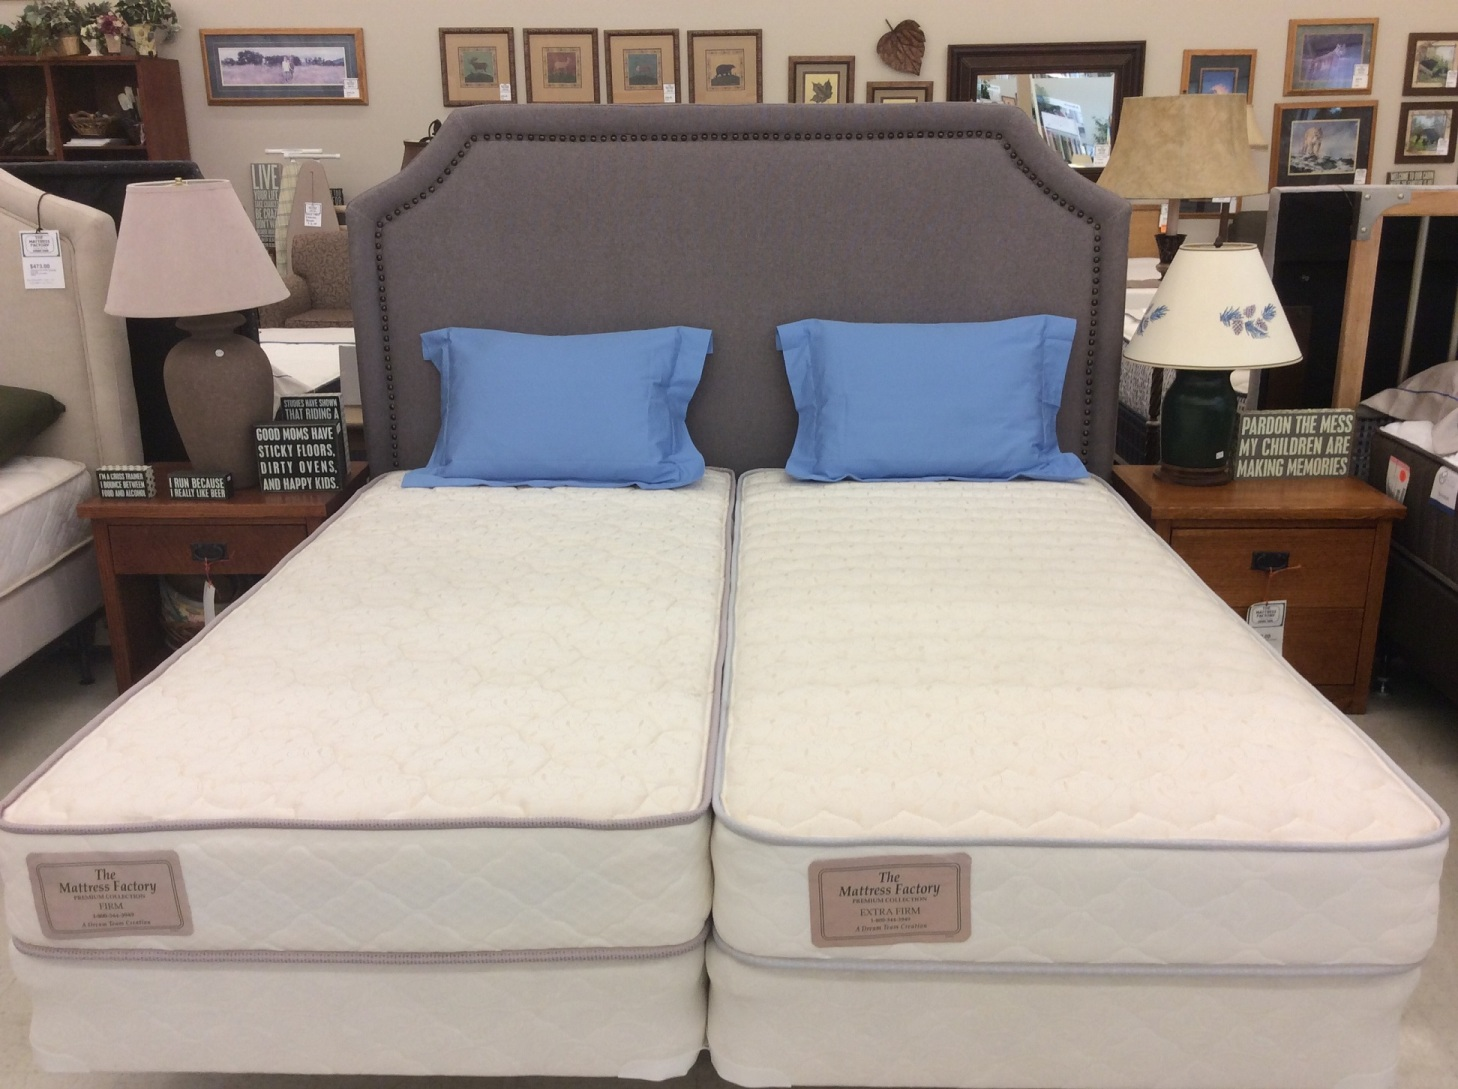 magnolia photo guest bend rooms mattress large org gallery new factory wheelchair bedding po accessible riverrooster